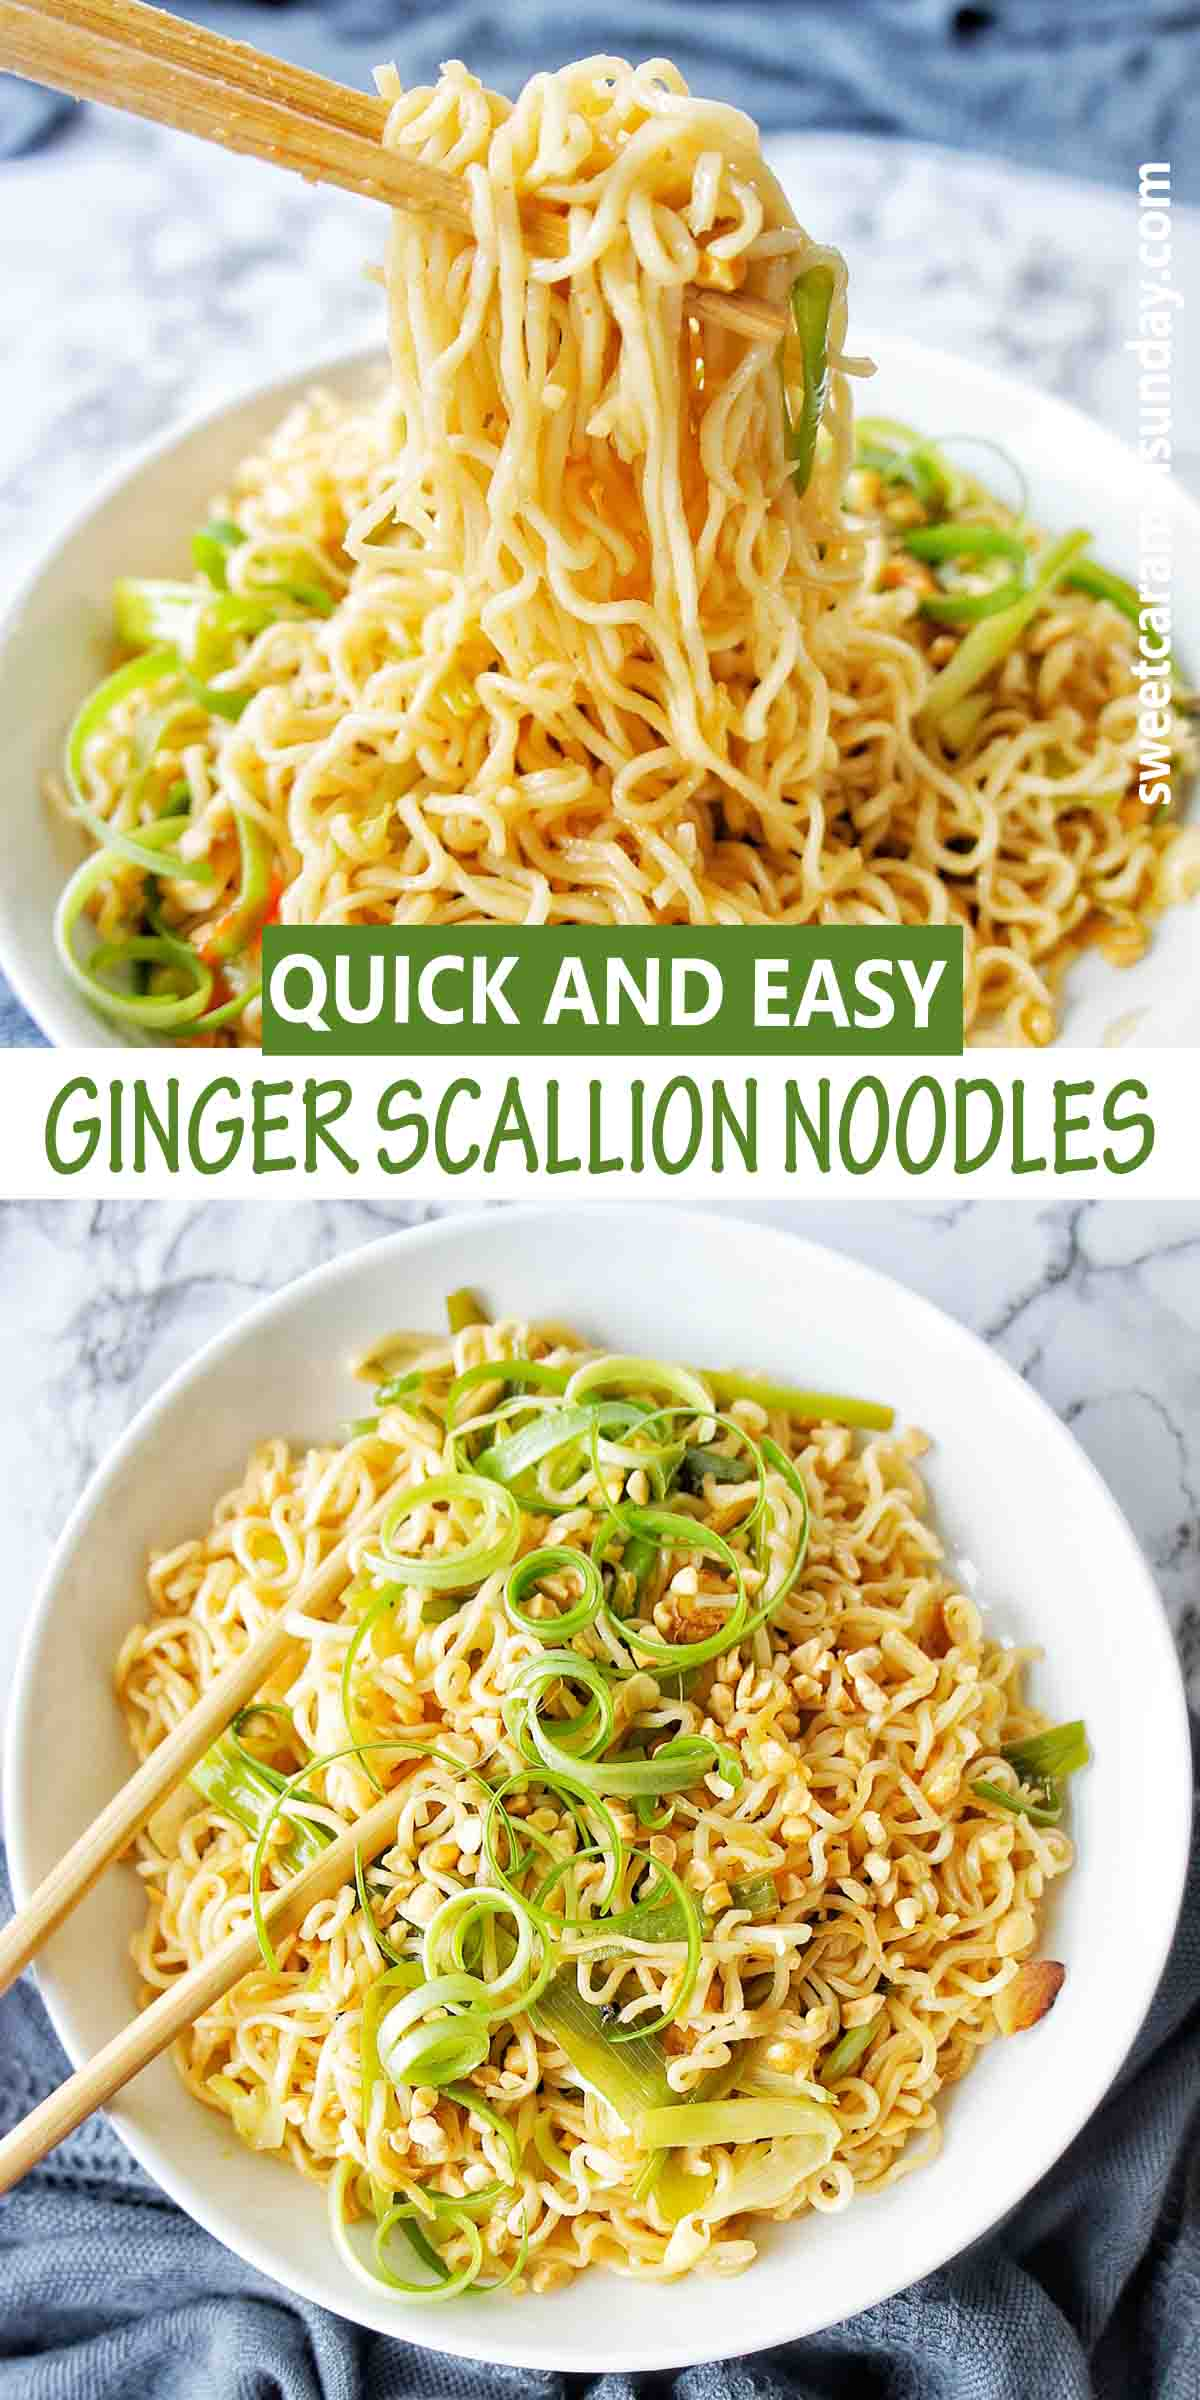 Ginger Scallion Noodles with text over lay